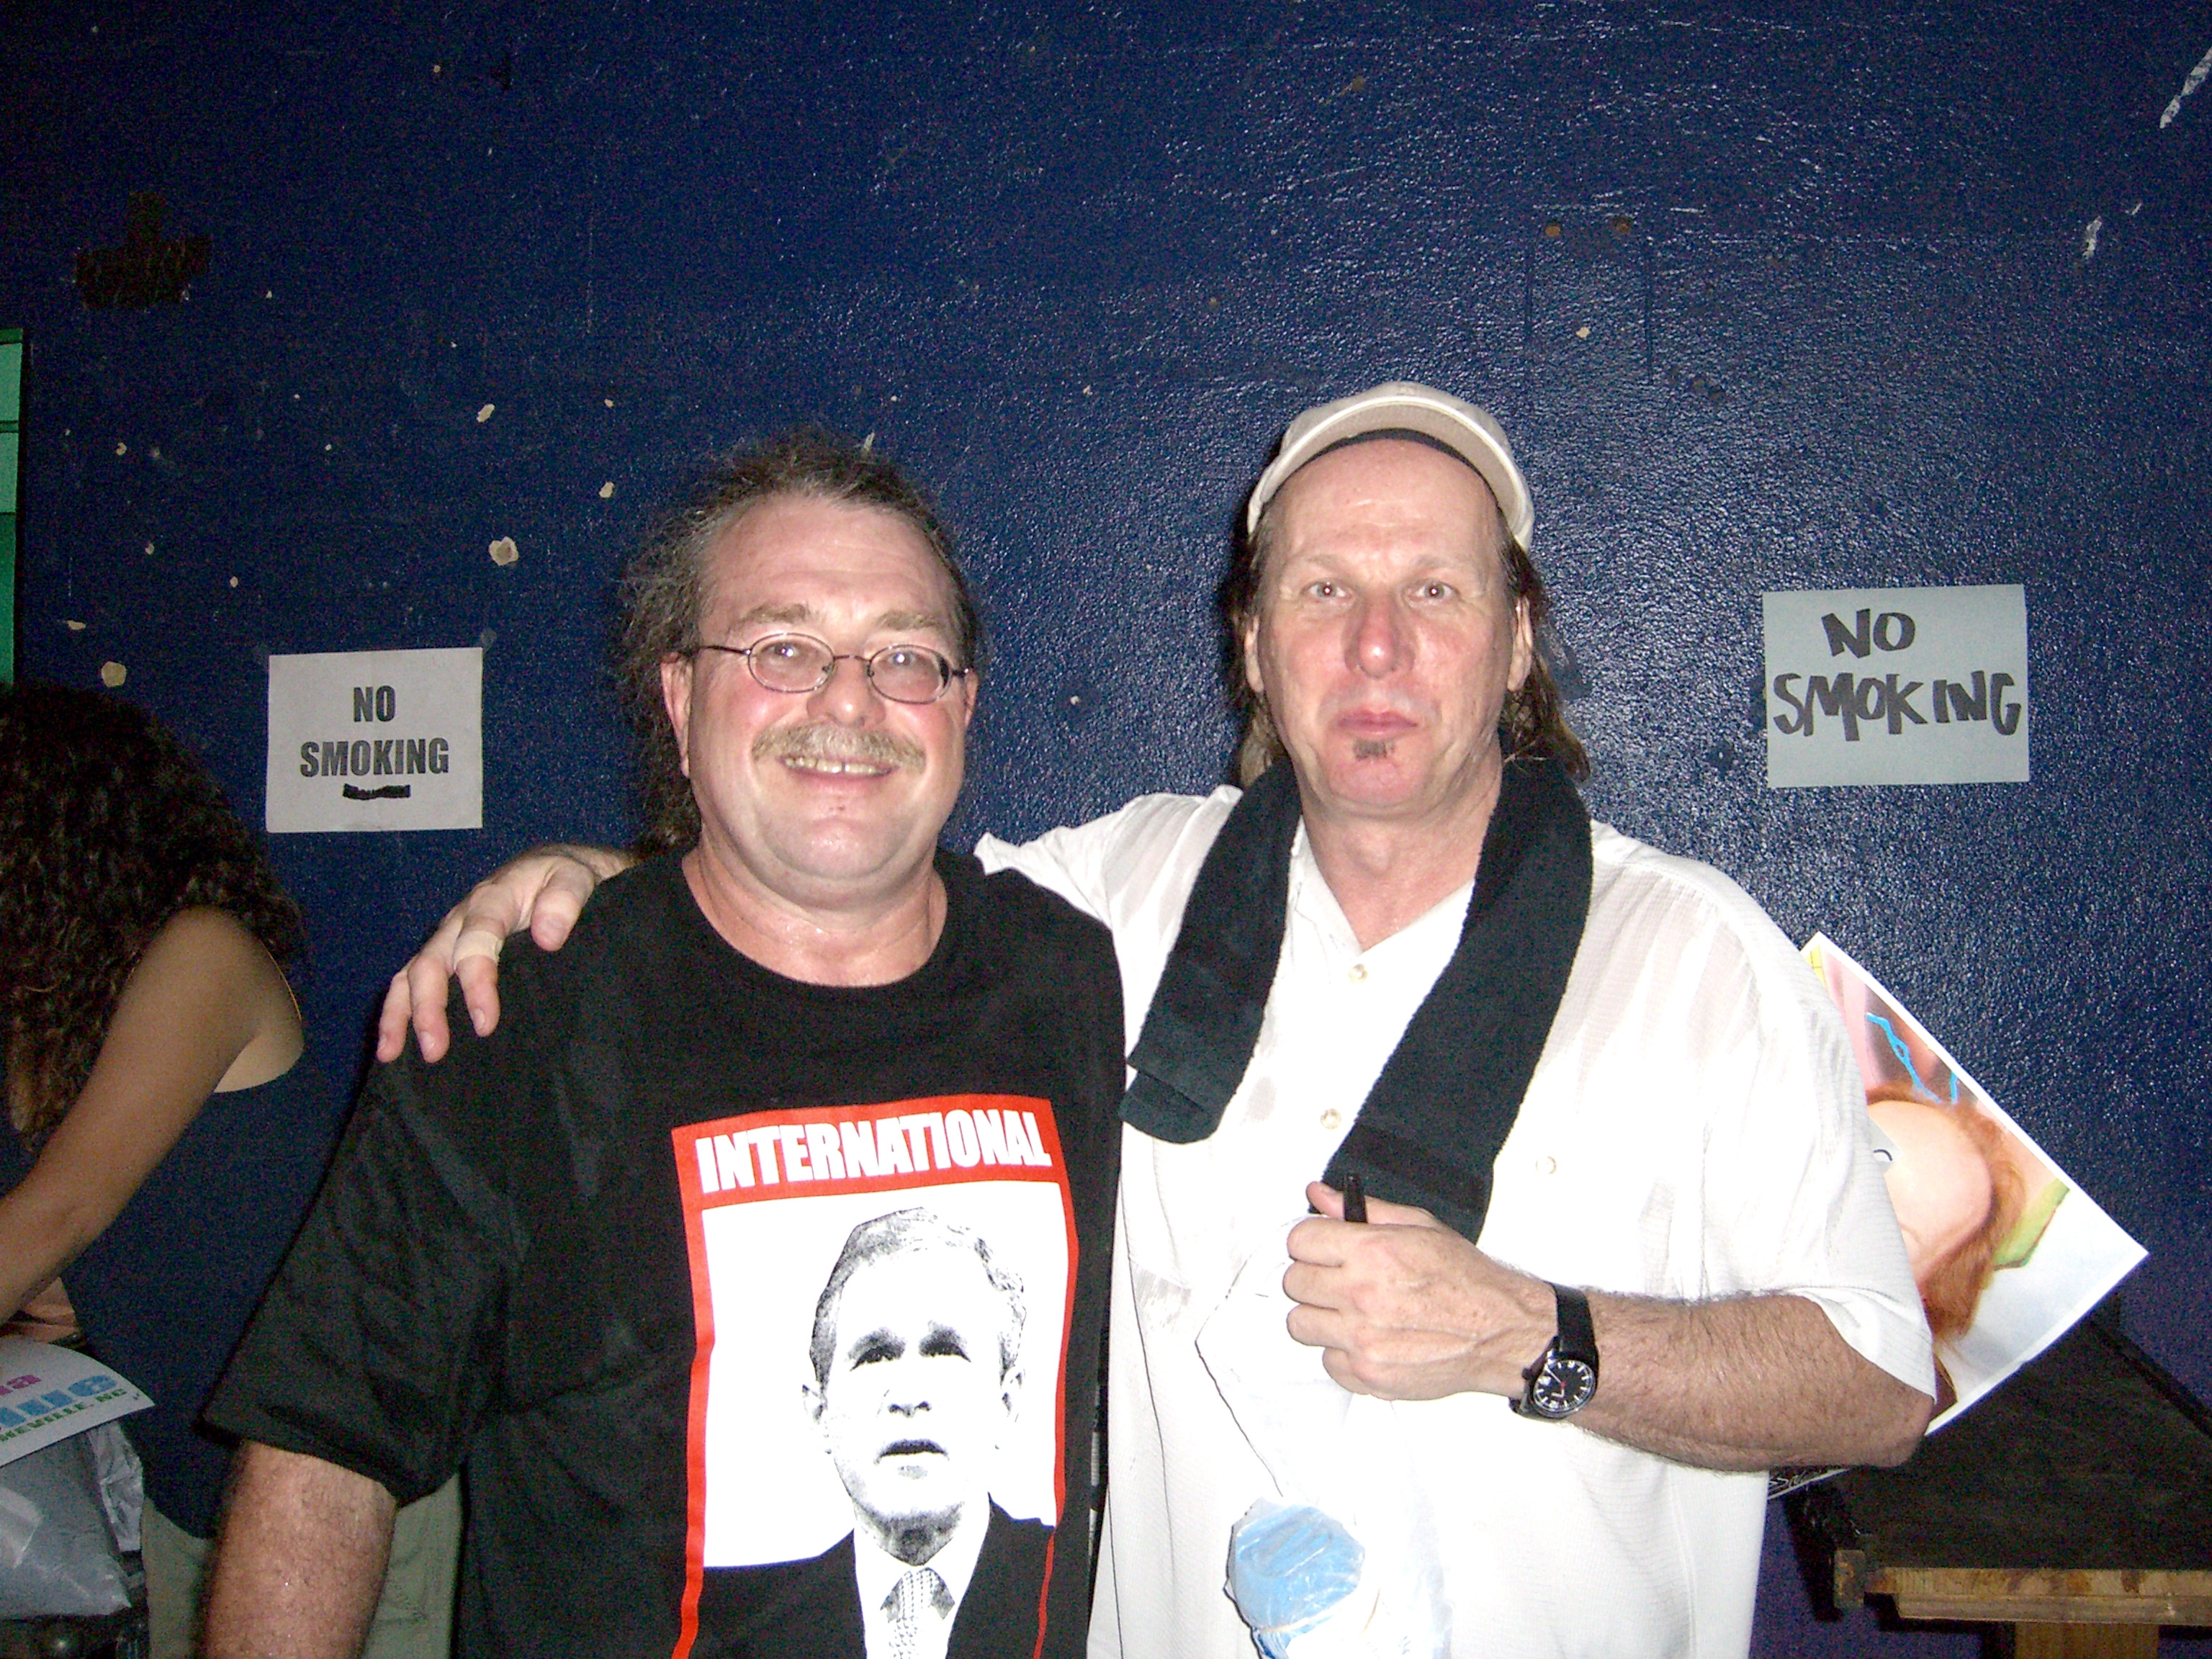 Adrian Belew and I